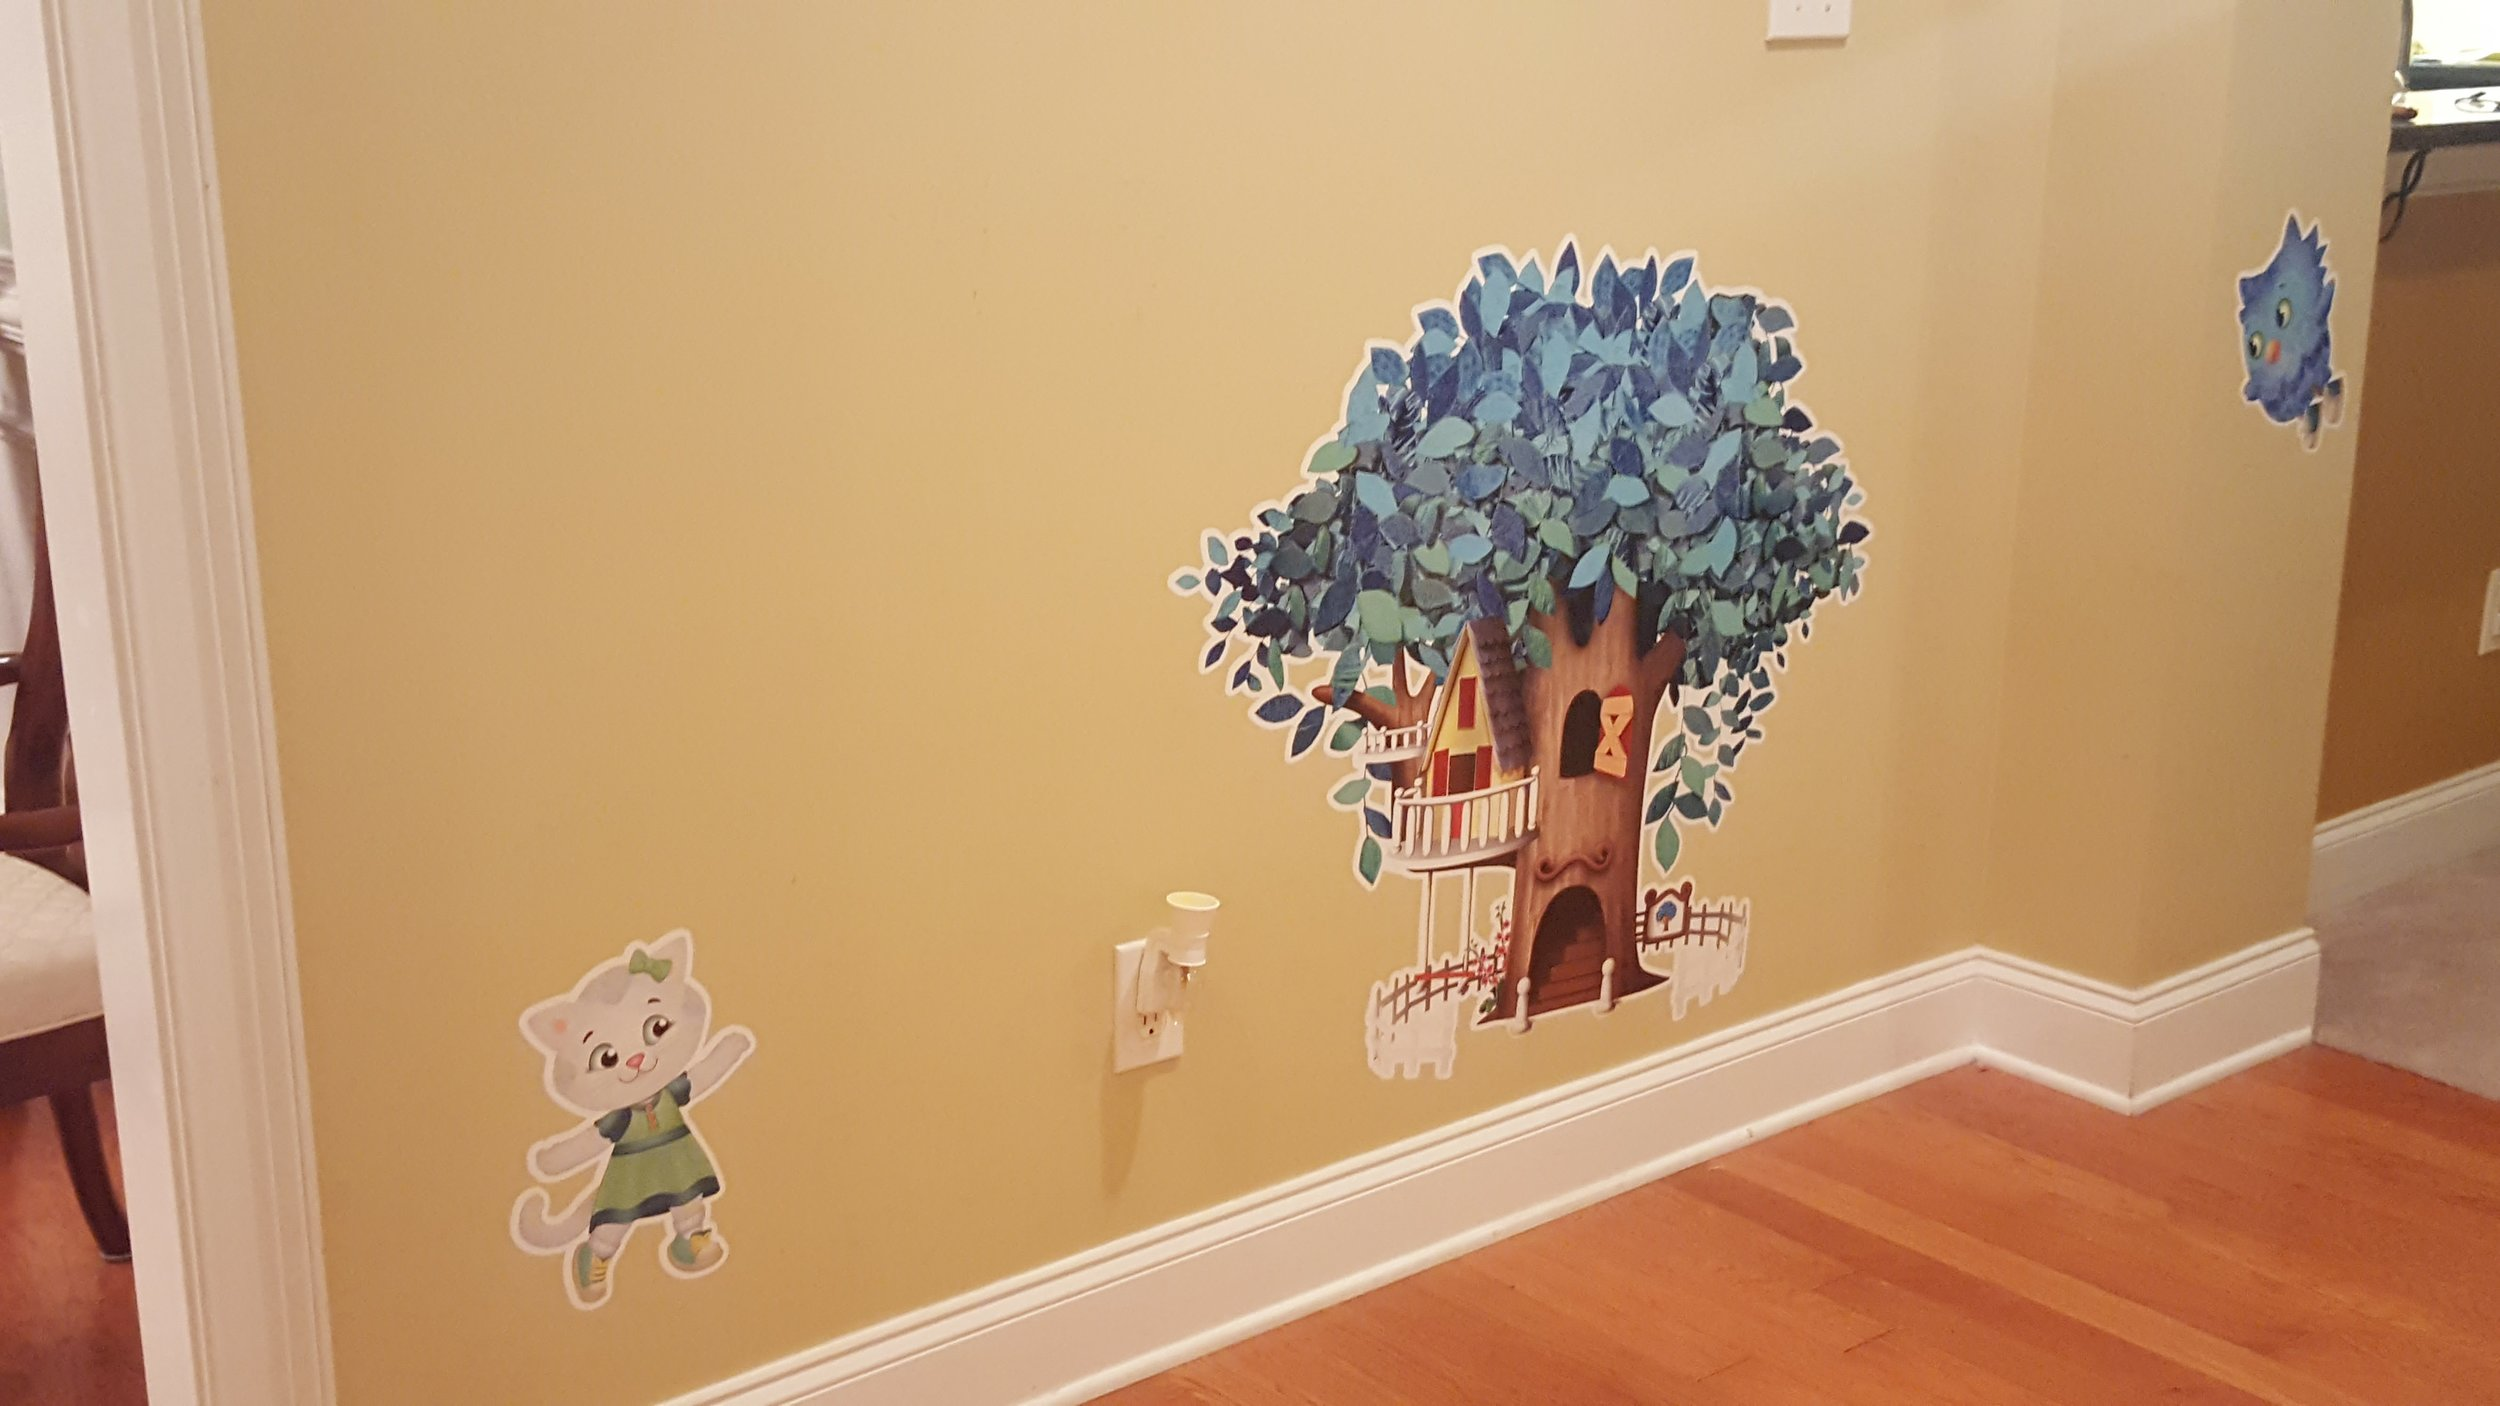 Wall Decals from Birthday Express on Amazon